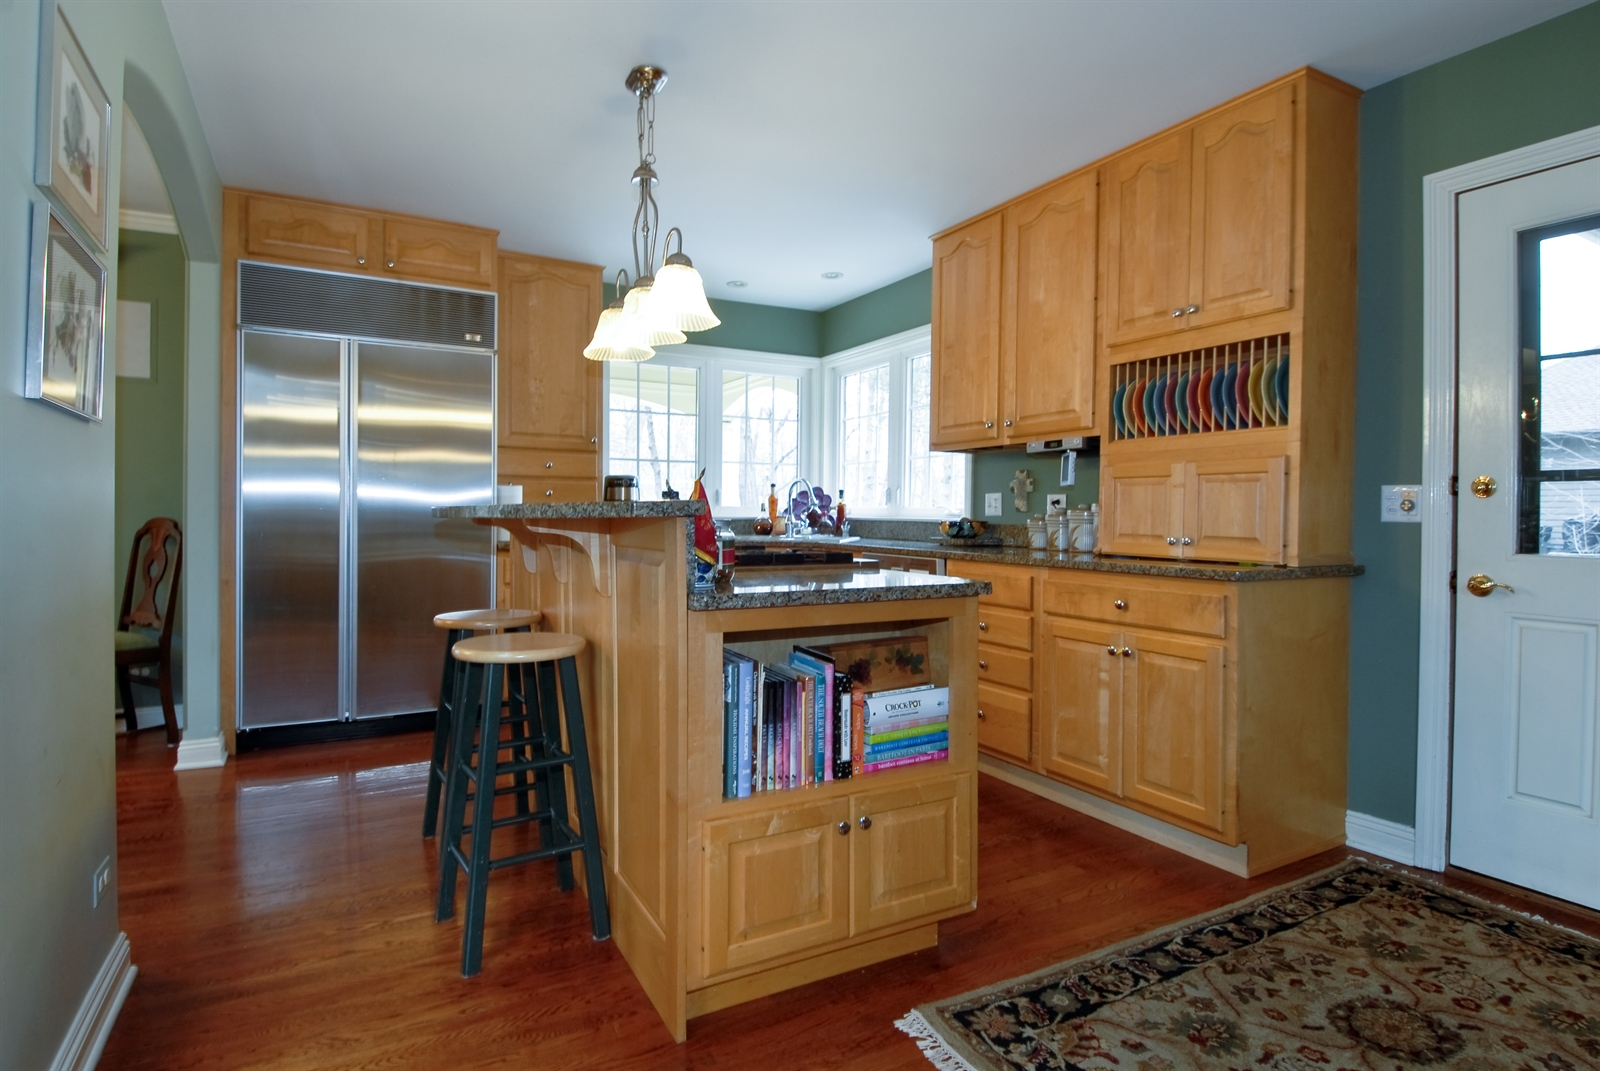 Real Estate Photography - 620 E Gartner Rd, Naperville, IL, 60540 - Kitchen